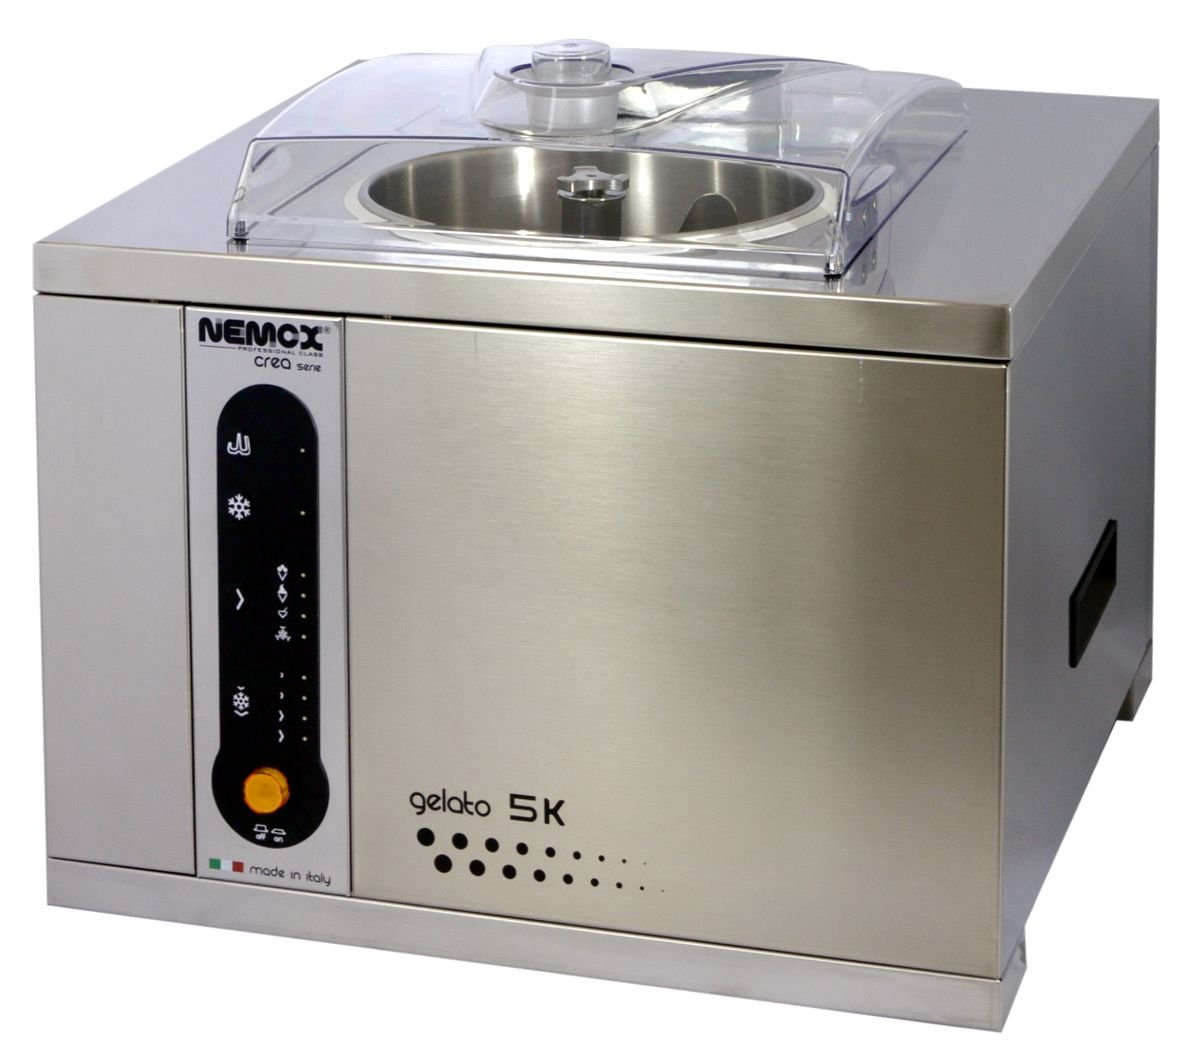 Nemox Pro 5K Crea Fully Automatic Commercial Tabletop Gelato/Ice Cream Maker with Conservation, 18.9'' Length